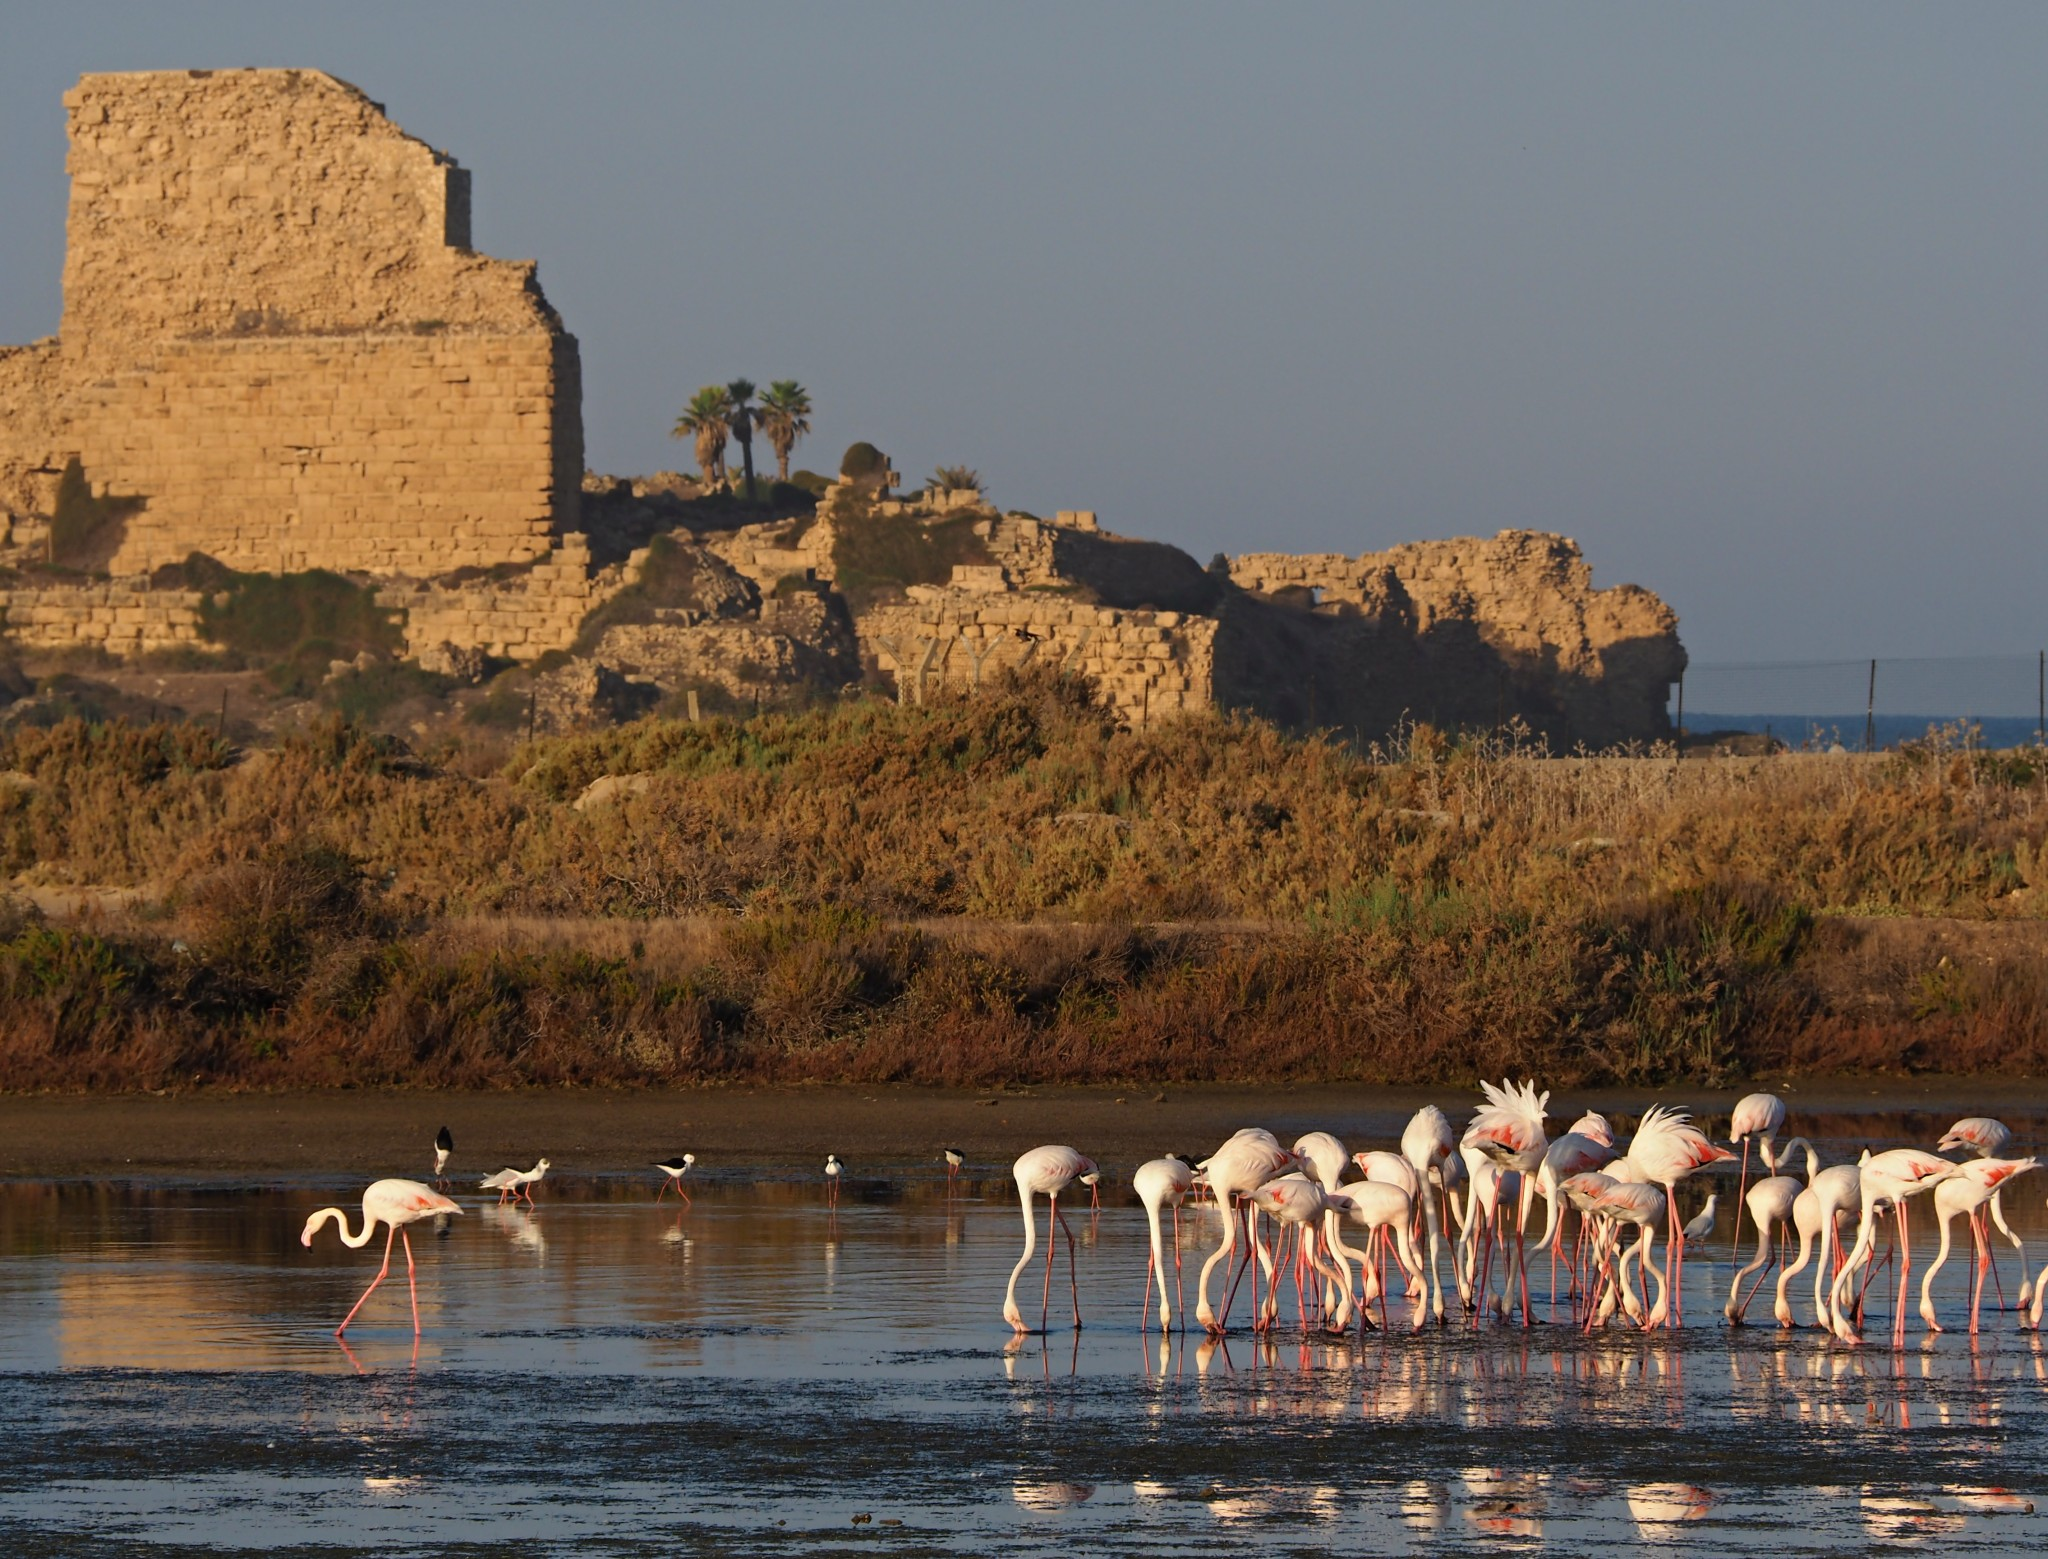 Flamingos in front of the Atlit Fortress. Photo by Ilya Krivorok